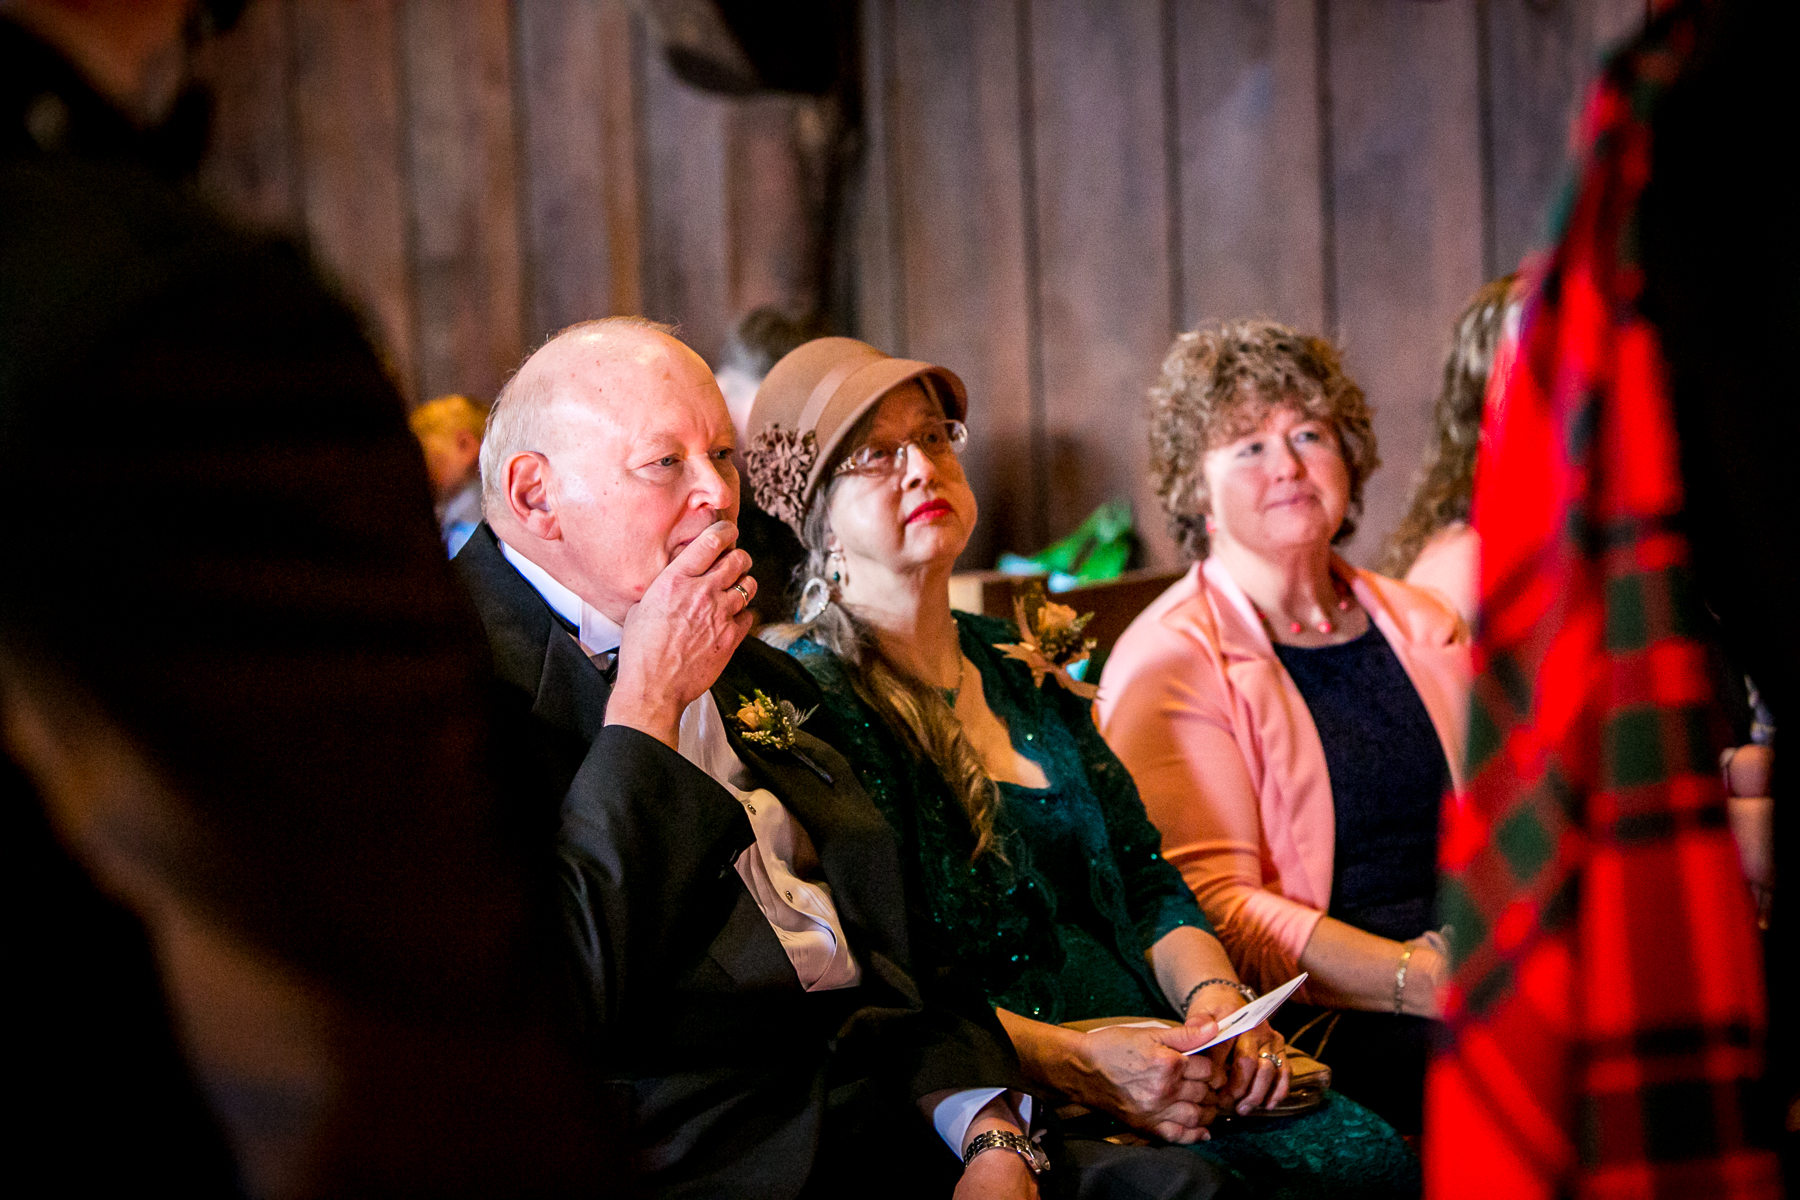 father of bride gets emotional during wedding ceremony at bay area wedding photographer